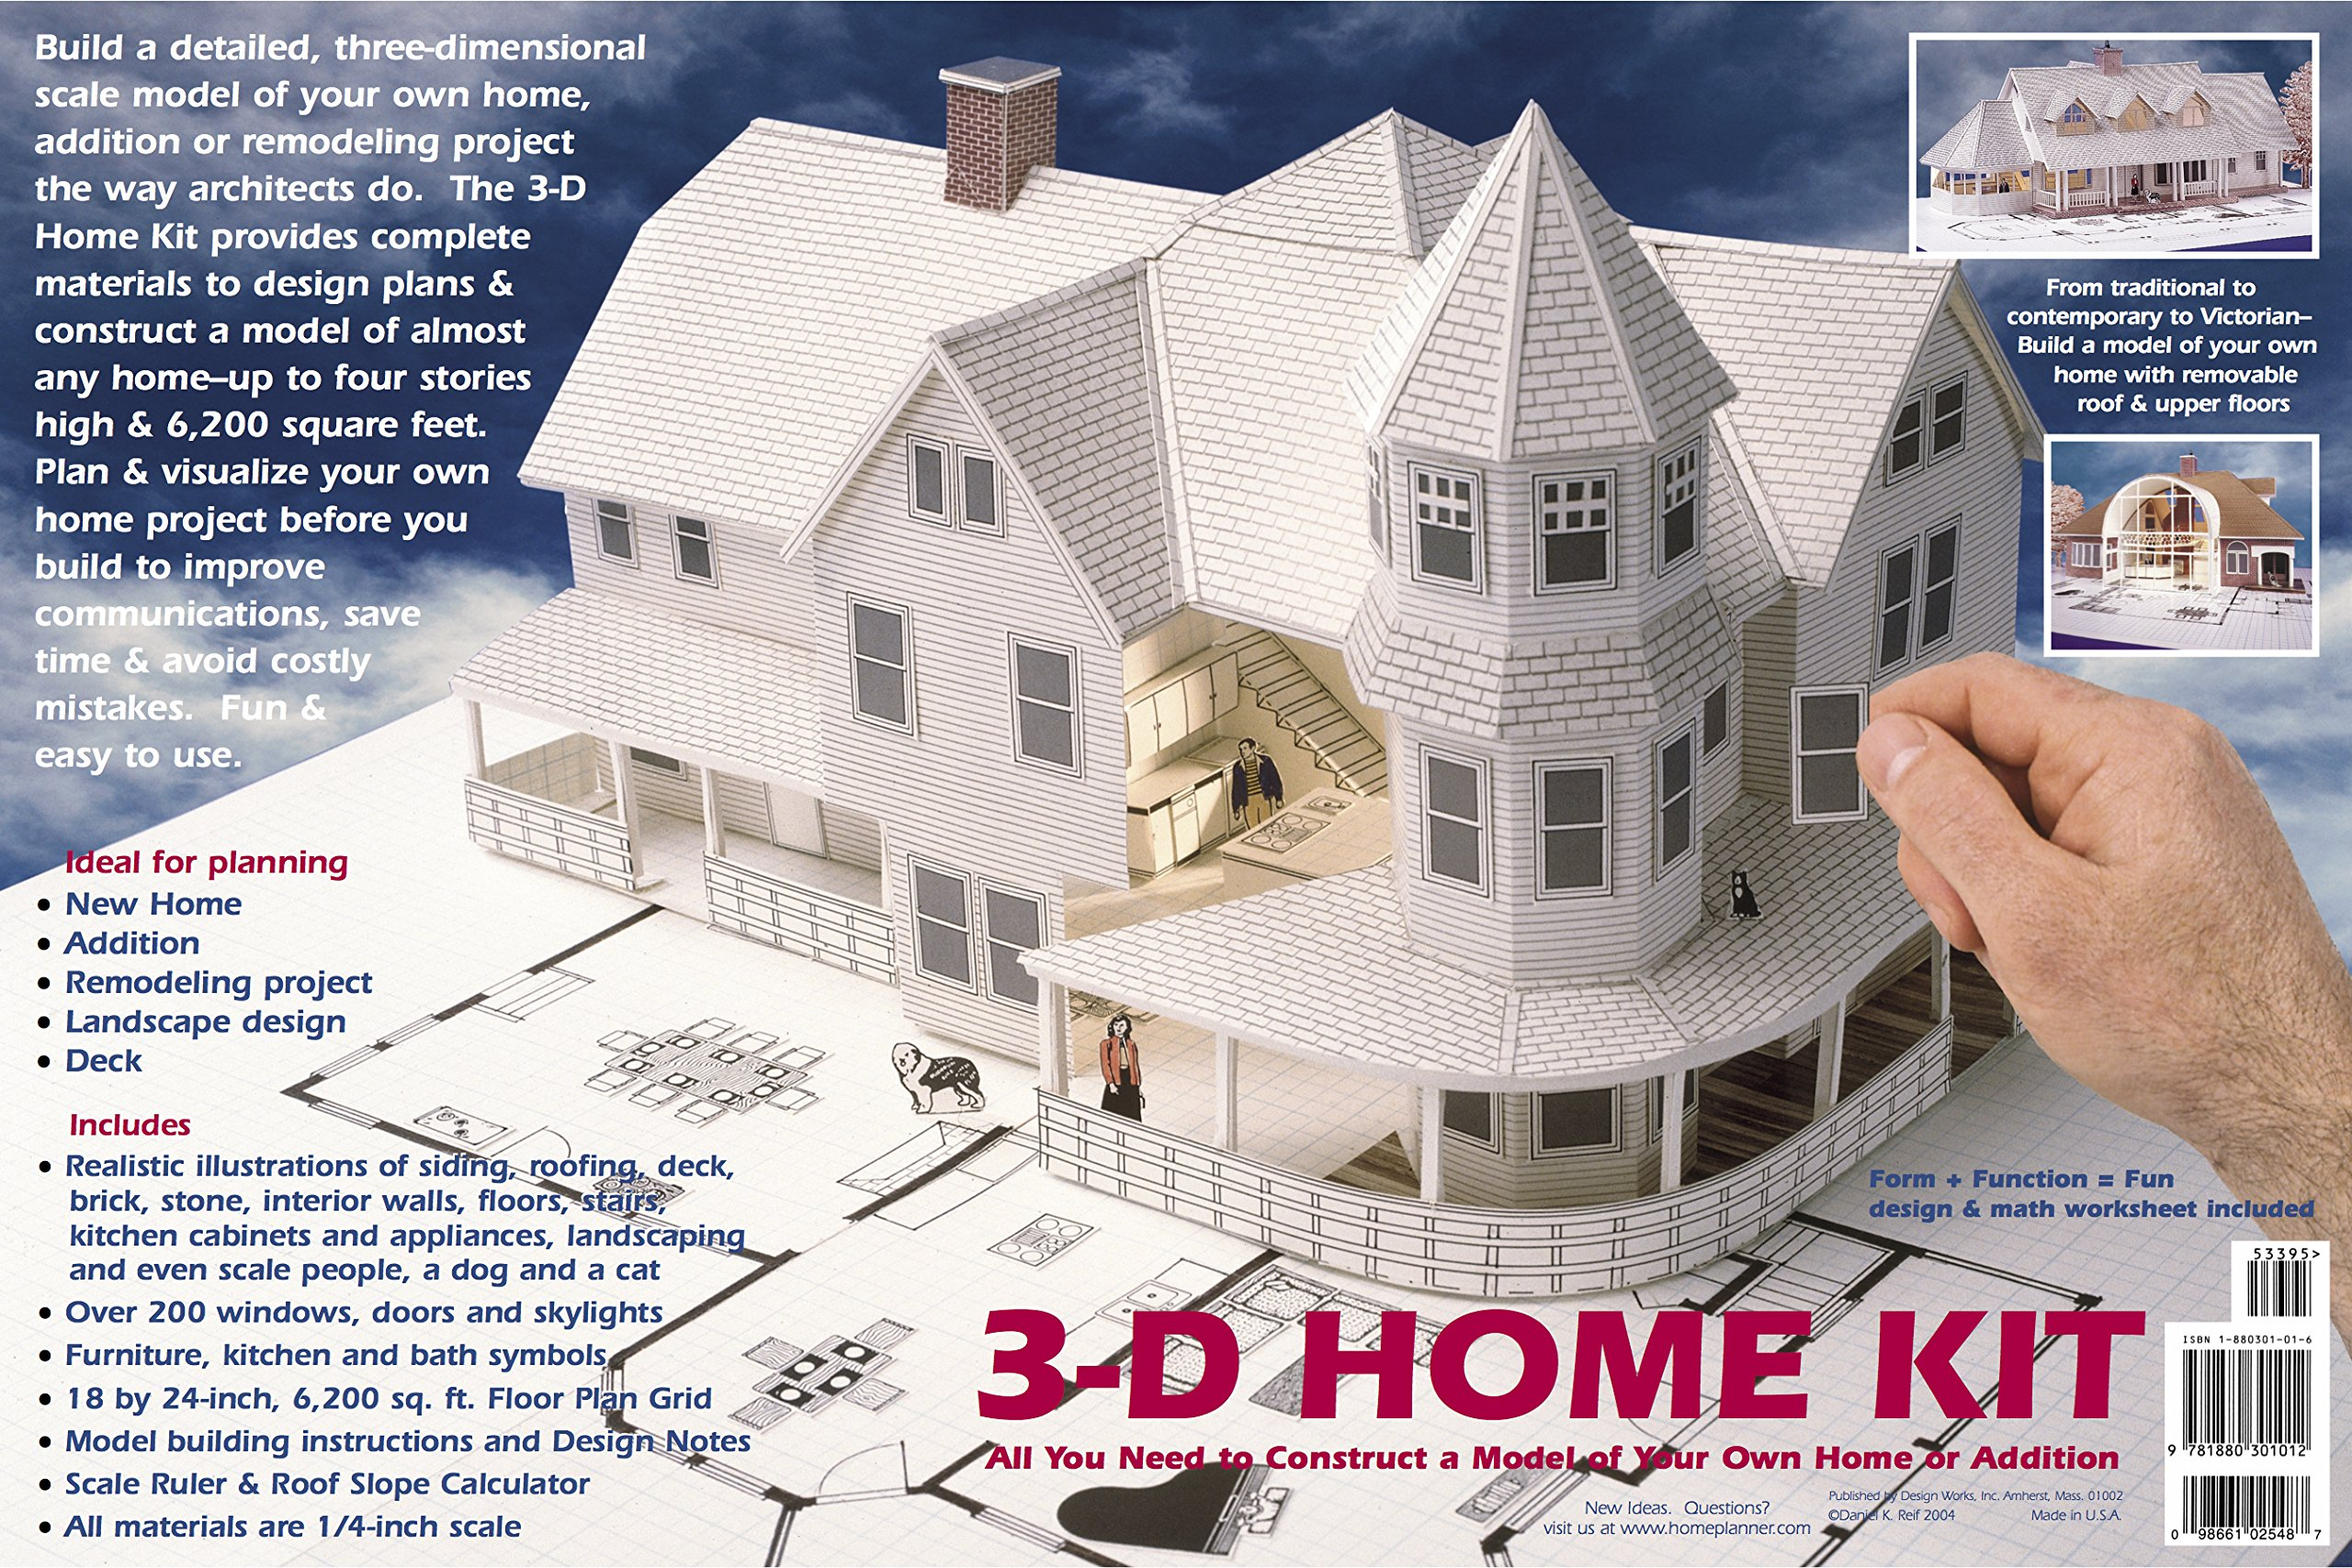 Wonderful Home Design Kit Part - 7: 3-D Home Kit: All You Need To Construct A Model Of Your Own Home Or  Addition: Daniel Reif, Dan Reif: 0098661025487: Amazon.com: Books